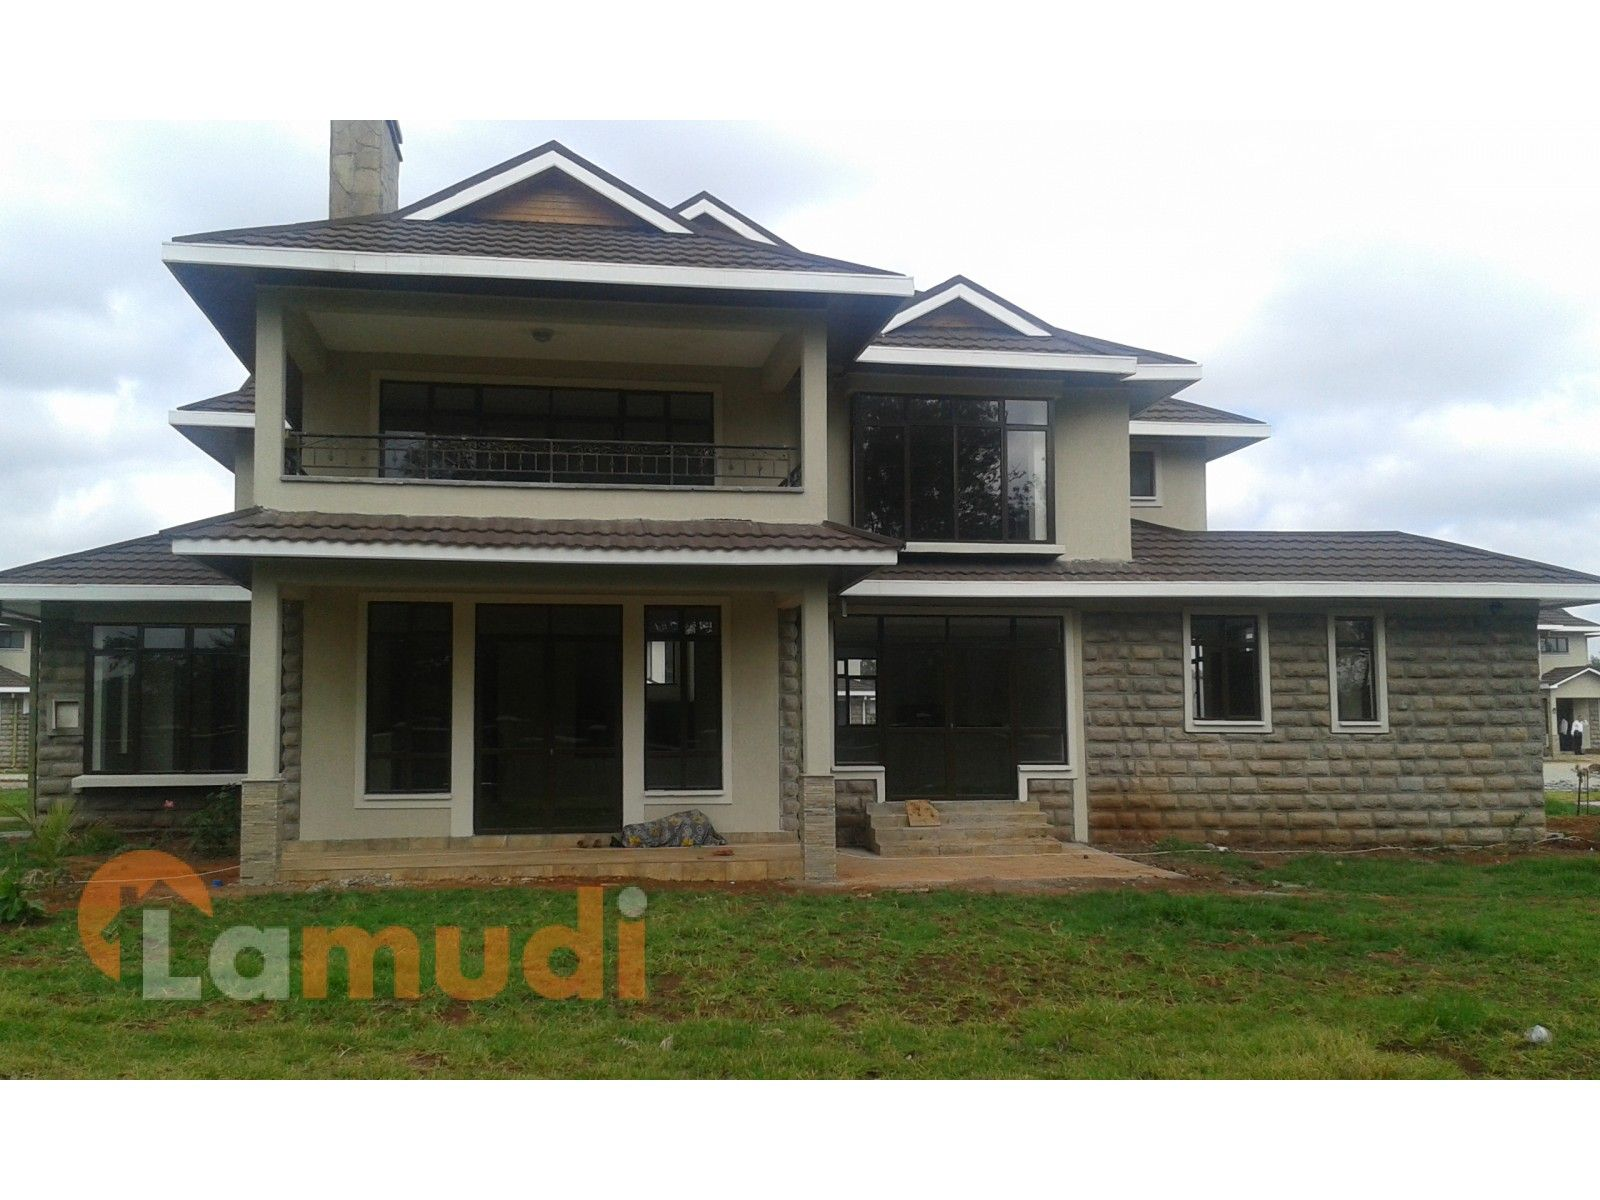 High end house For Sale in Karen Nairobi houses